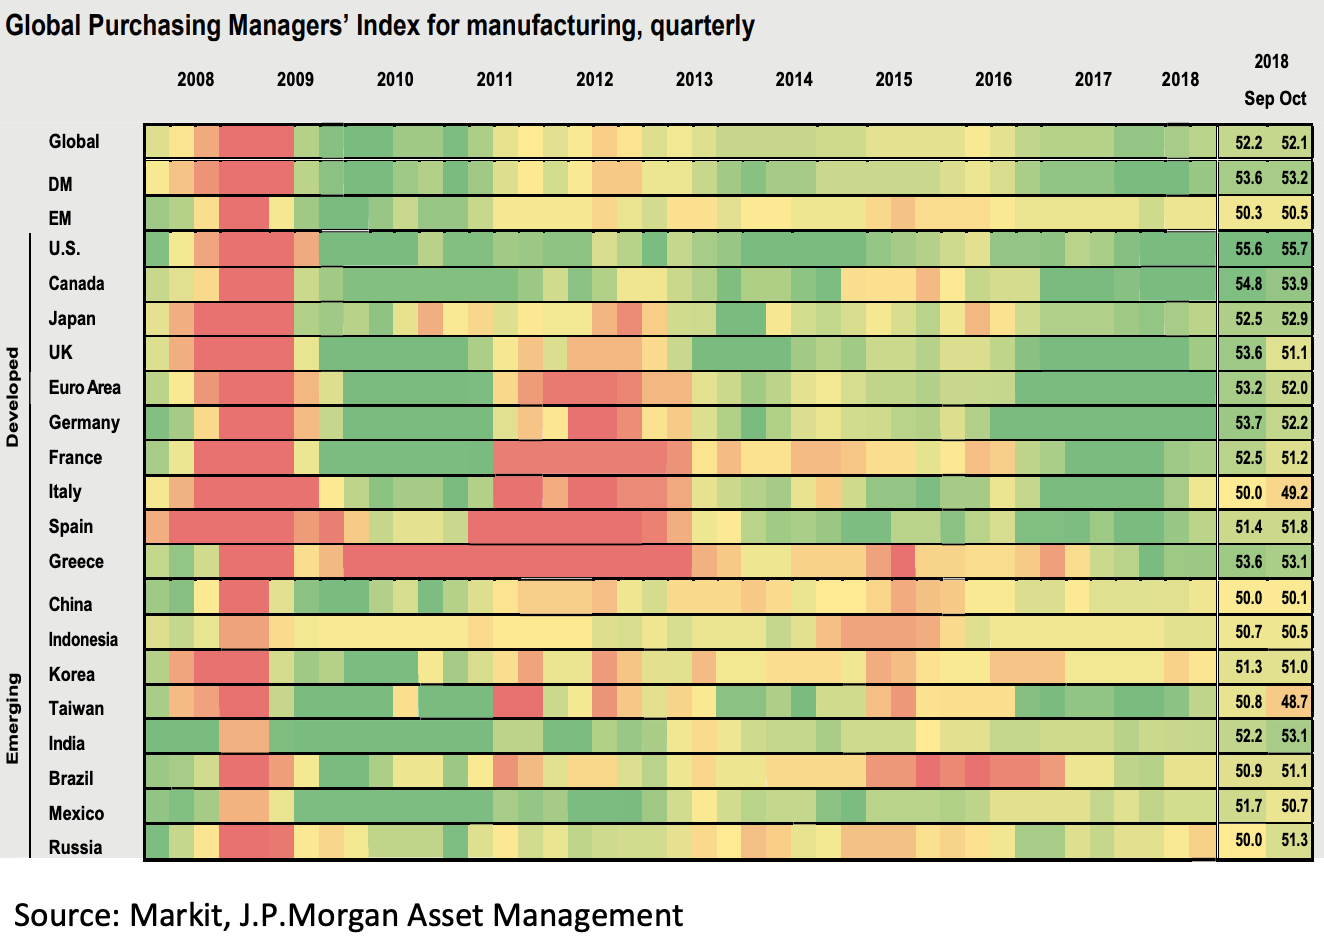 Global Purchasing Managers' Index for manufacturing